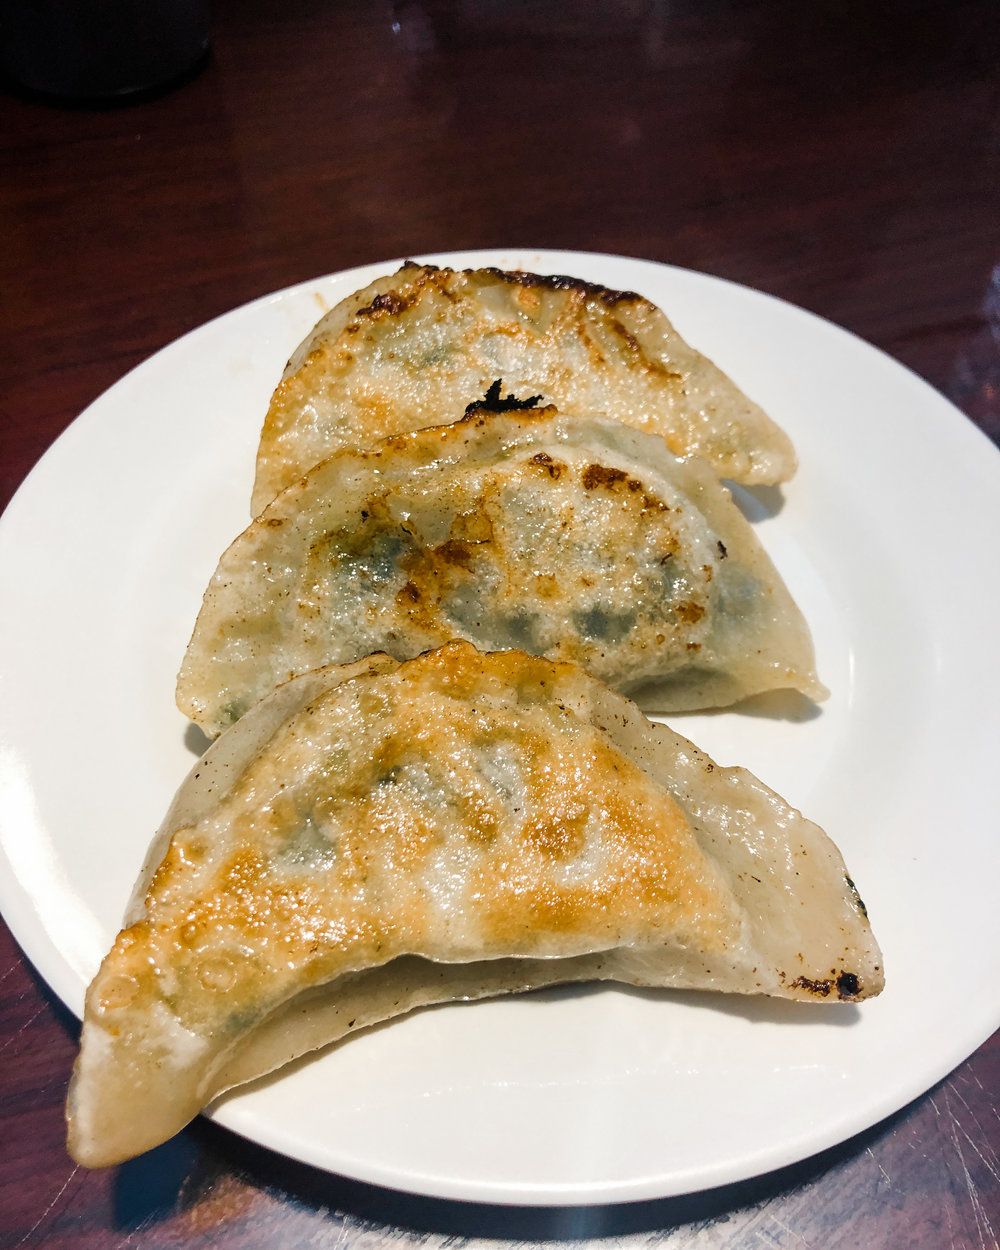 Pan fried dumplings at Yuen Fong Dumplings in Hong Kong